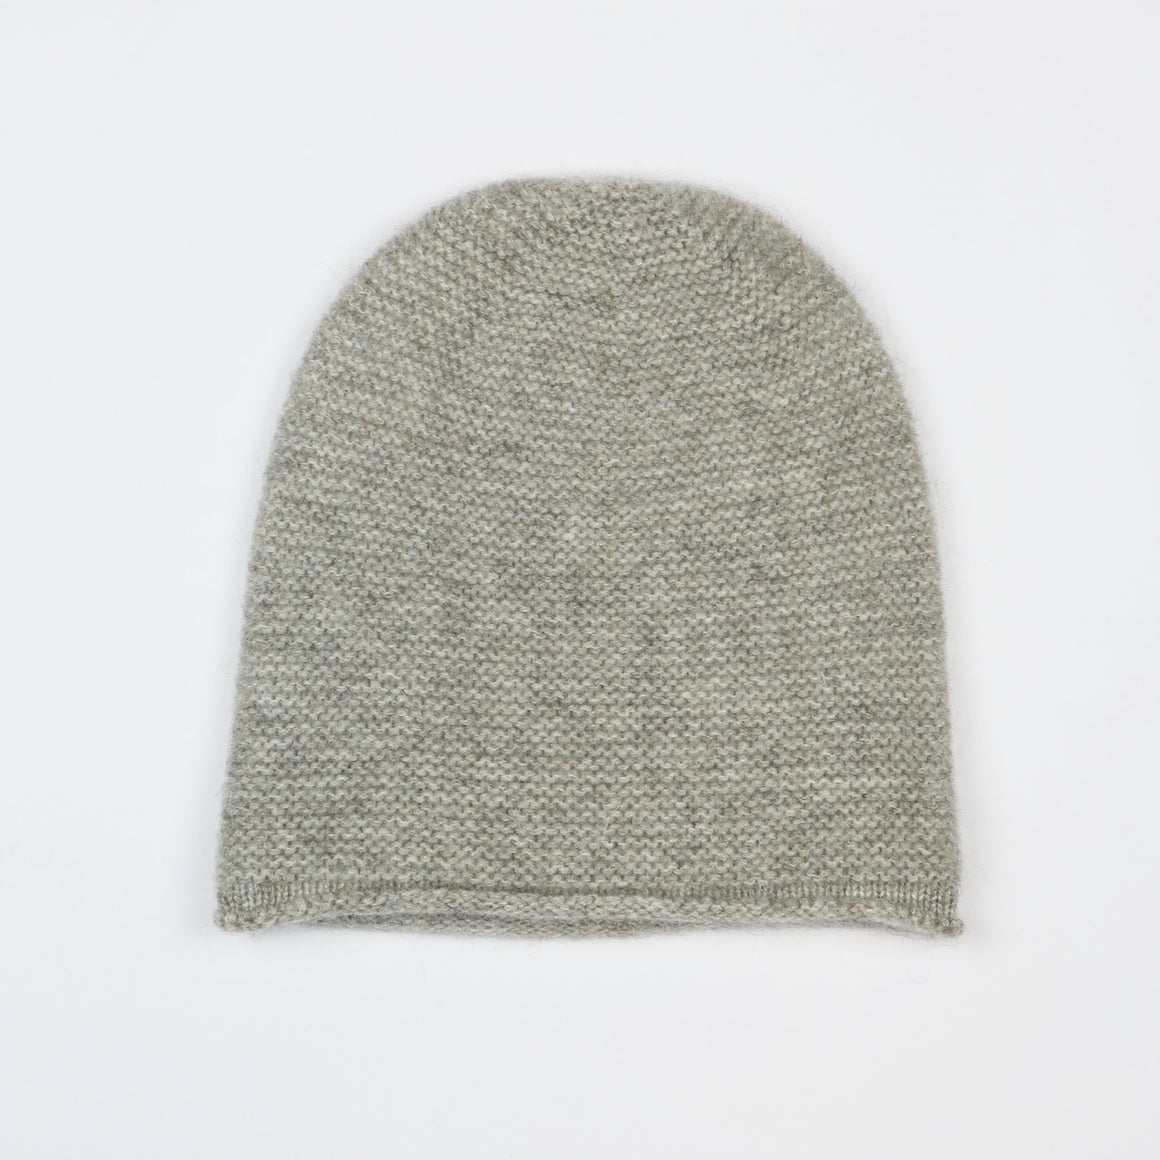 'Curly' hat